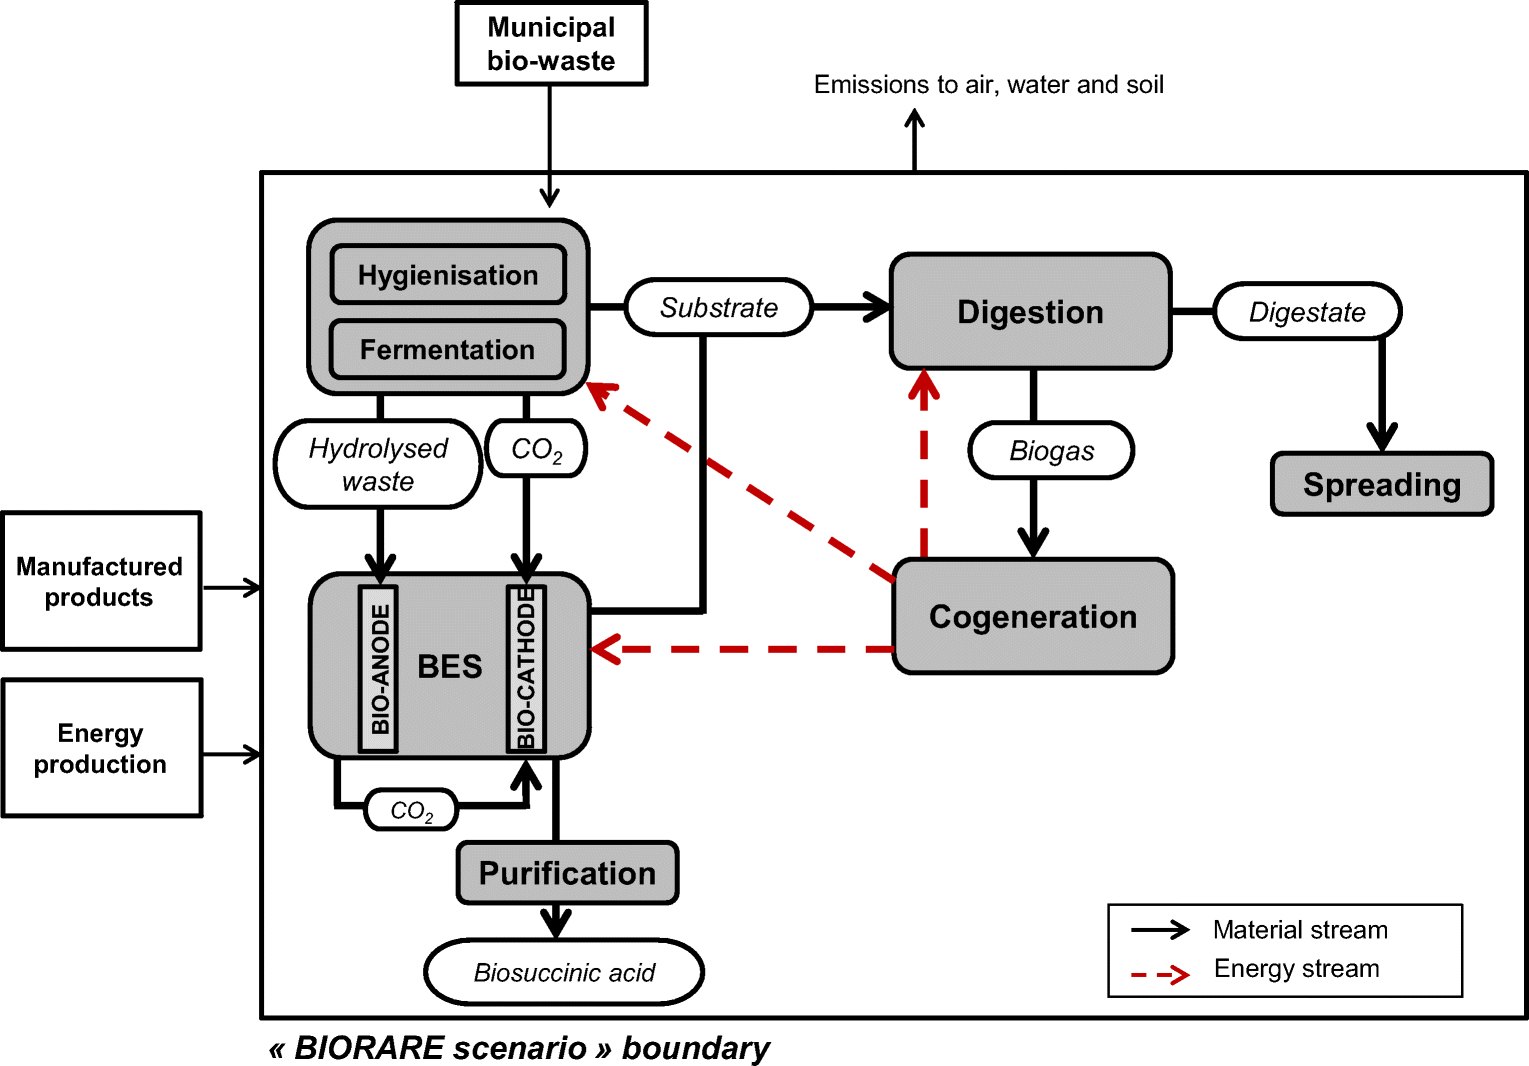 Life Cycle Assessment Of A Bioelectrochemical System As New Series Electric Circuit Loublet Schematic Open Image In Window